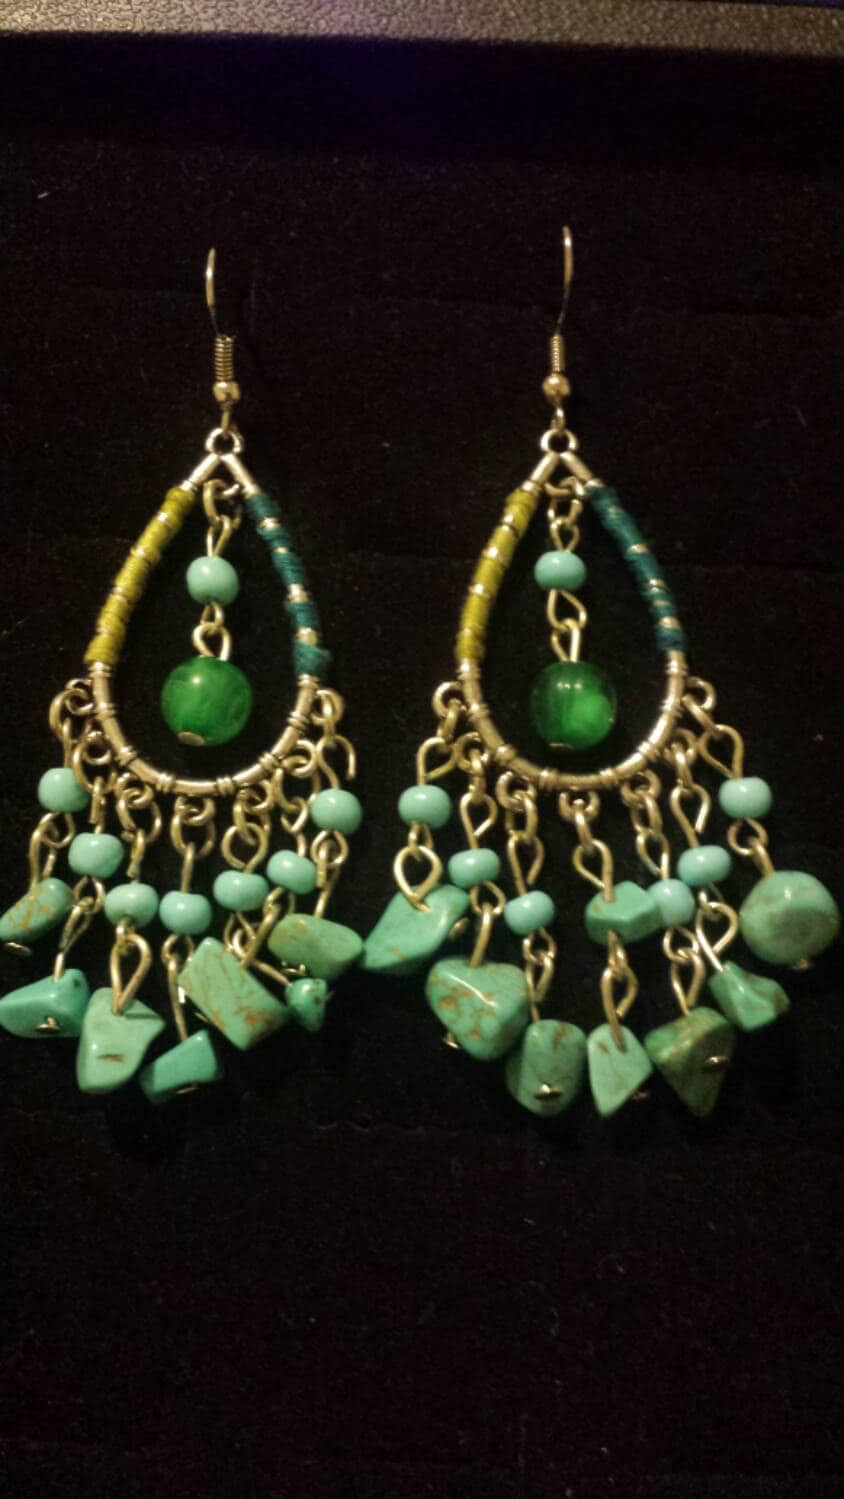 Western Theme Turquoise Gems Dangle Earrings Chandelier Earrings Silver Dangle Earrings